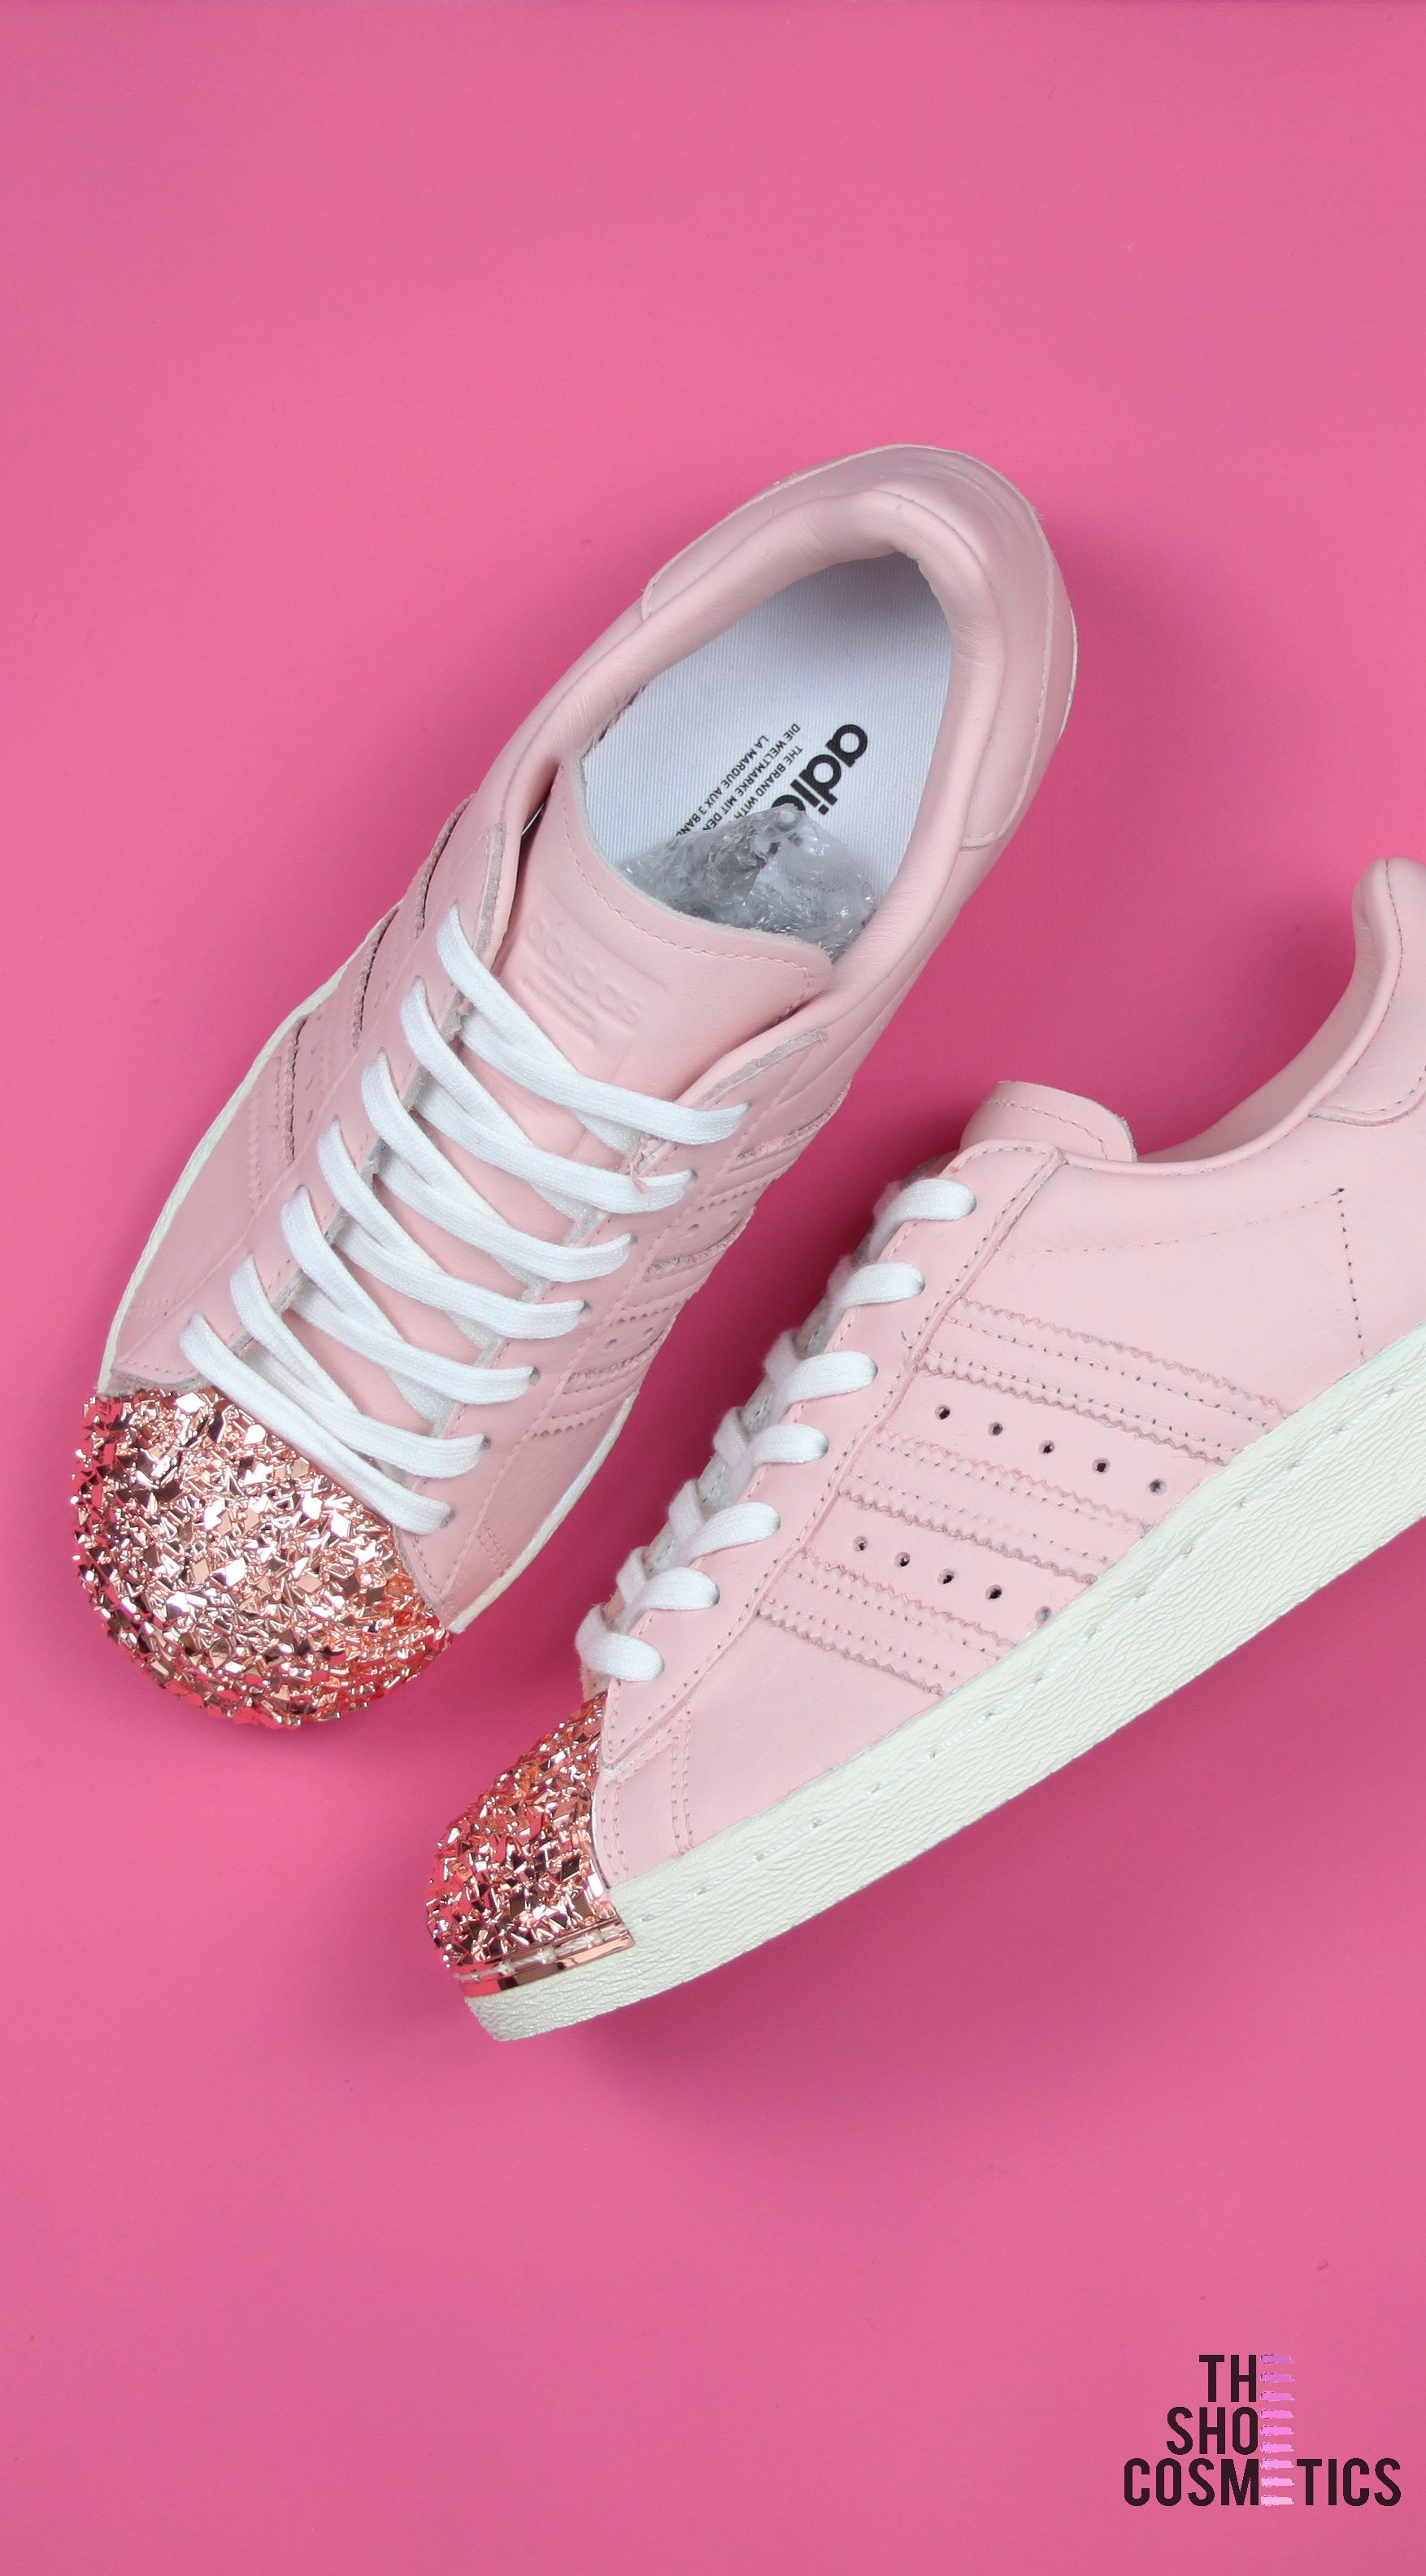 competitive price 1aefc 0b19c Explore our Pink rose gold Adidas custom sneakers. Love Adidas rose gold  shoes  Then these custom rose gold Adidas superstars are perfect for you.